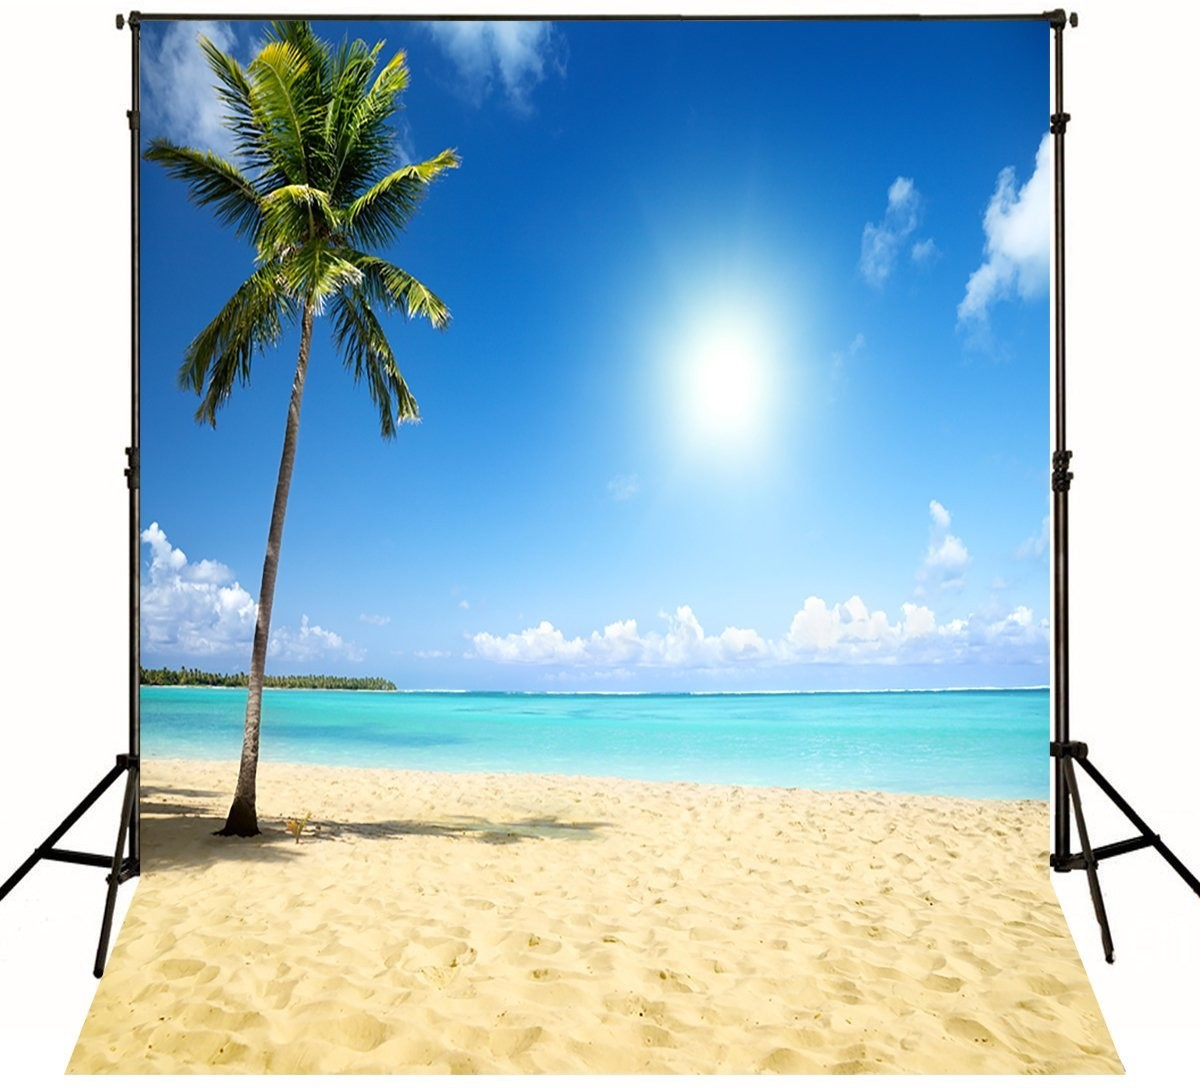 Sea Sand Tropical Beach photo backdrop  Vinyl cloth High quality Computer printed Wedding Backgrounds